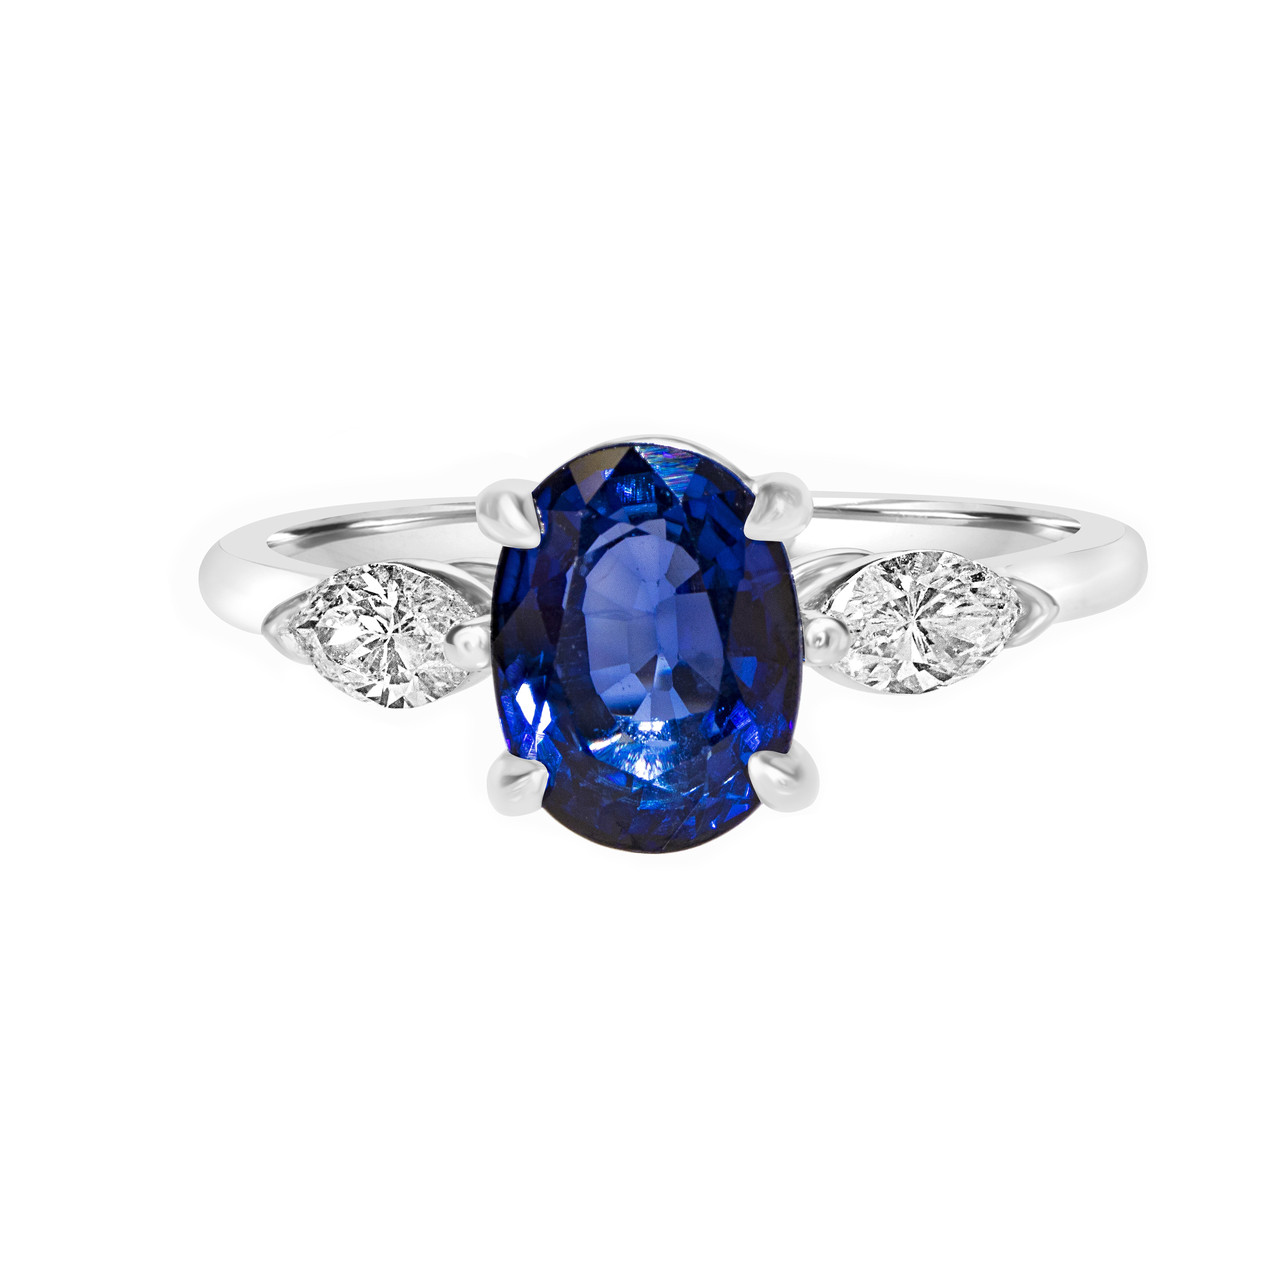 Oval Blue Sapphire Marquise Diamond Engagement Ring Blue Sapphire Engagement Rings Sapphire Rings